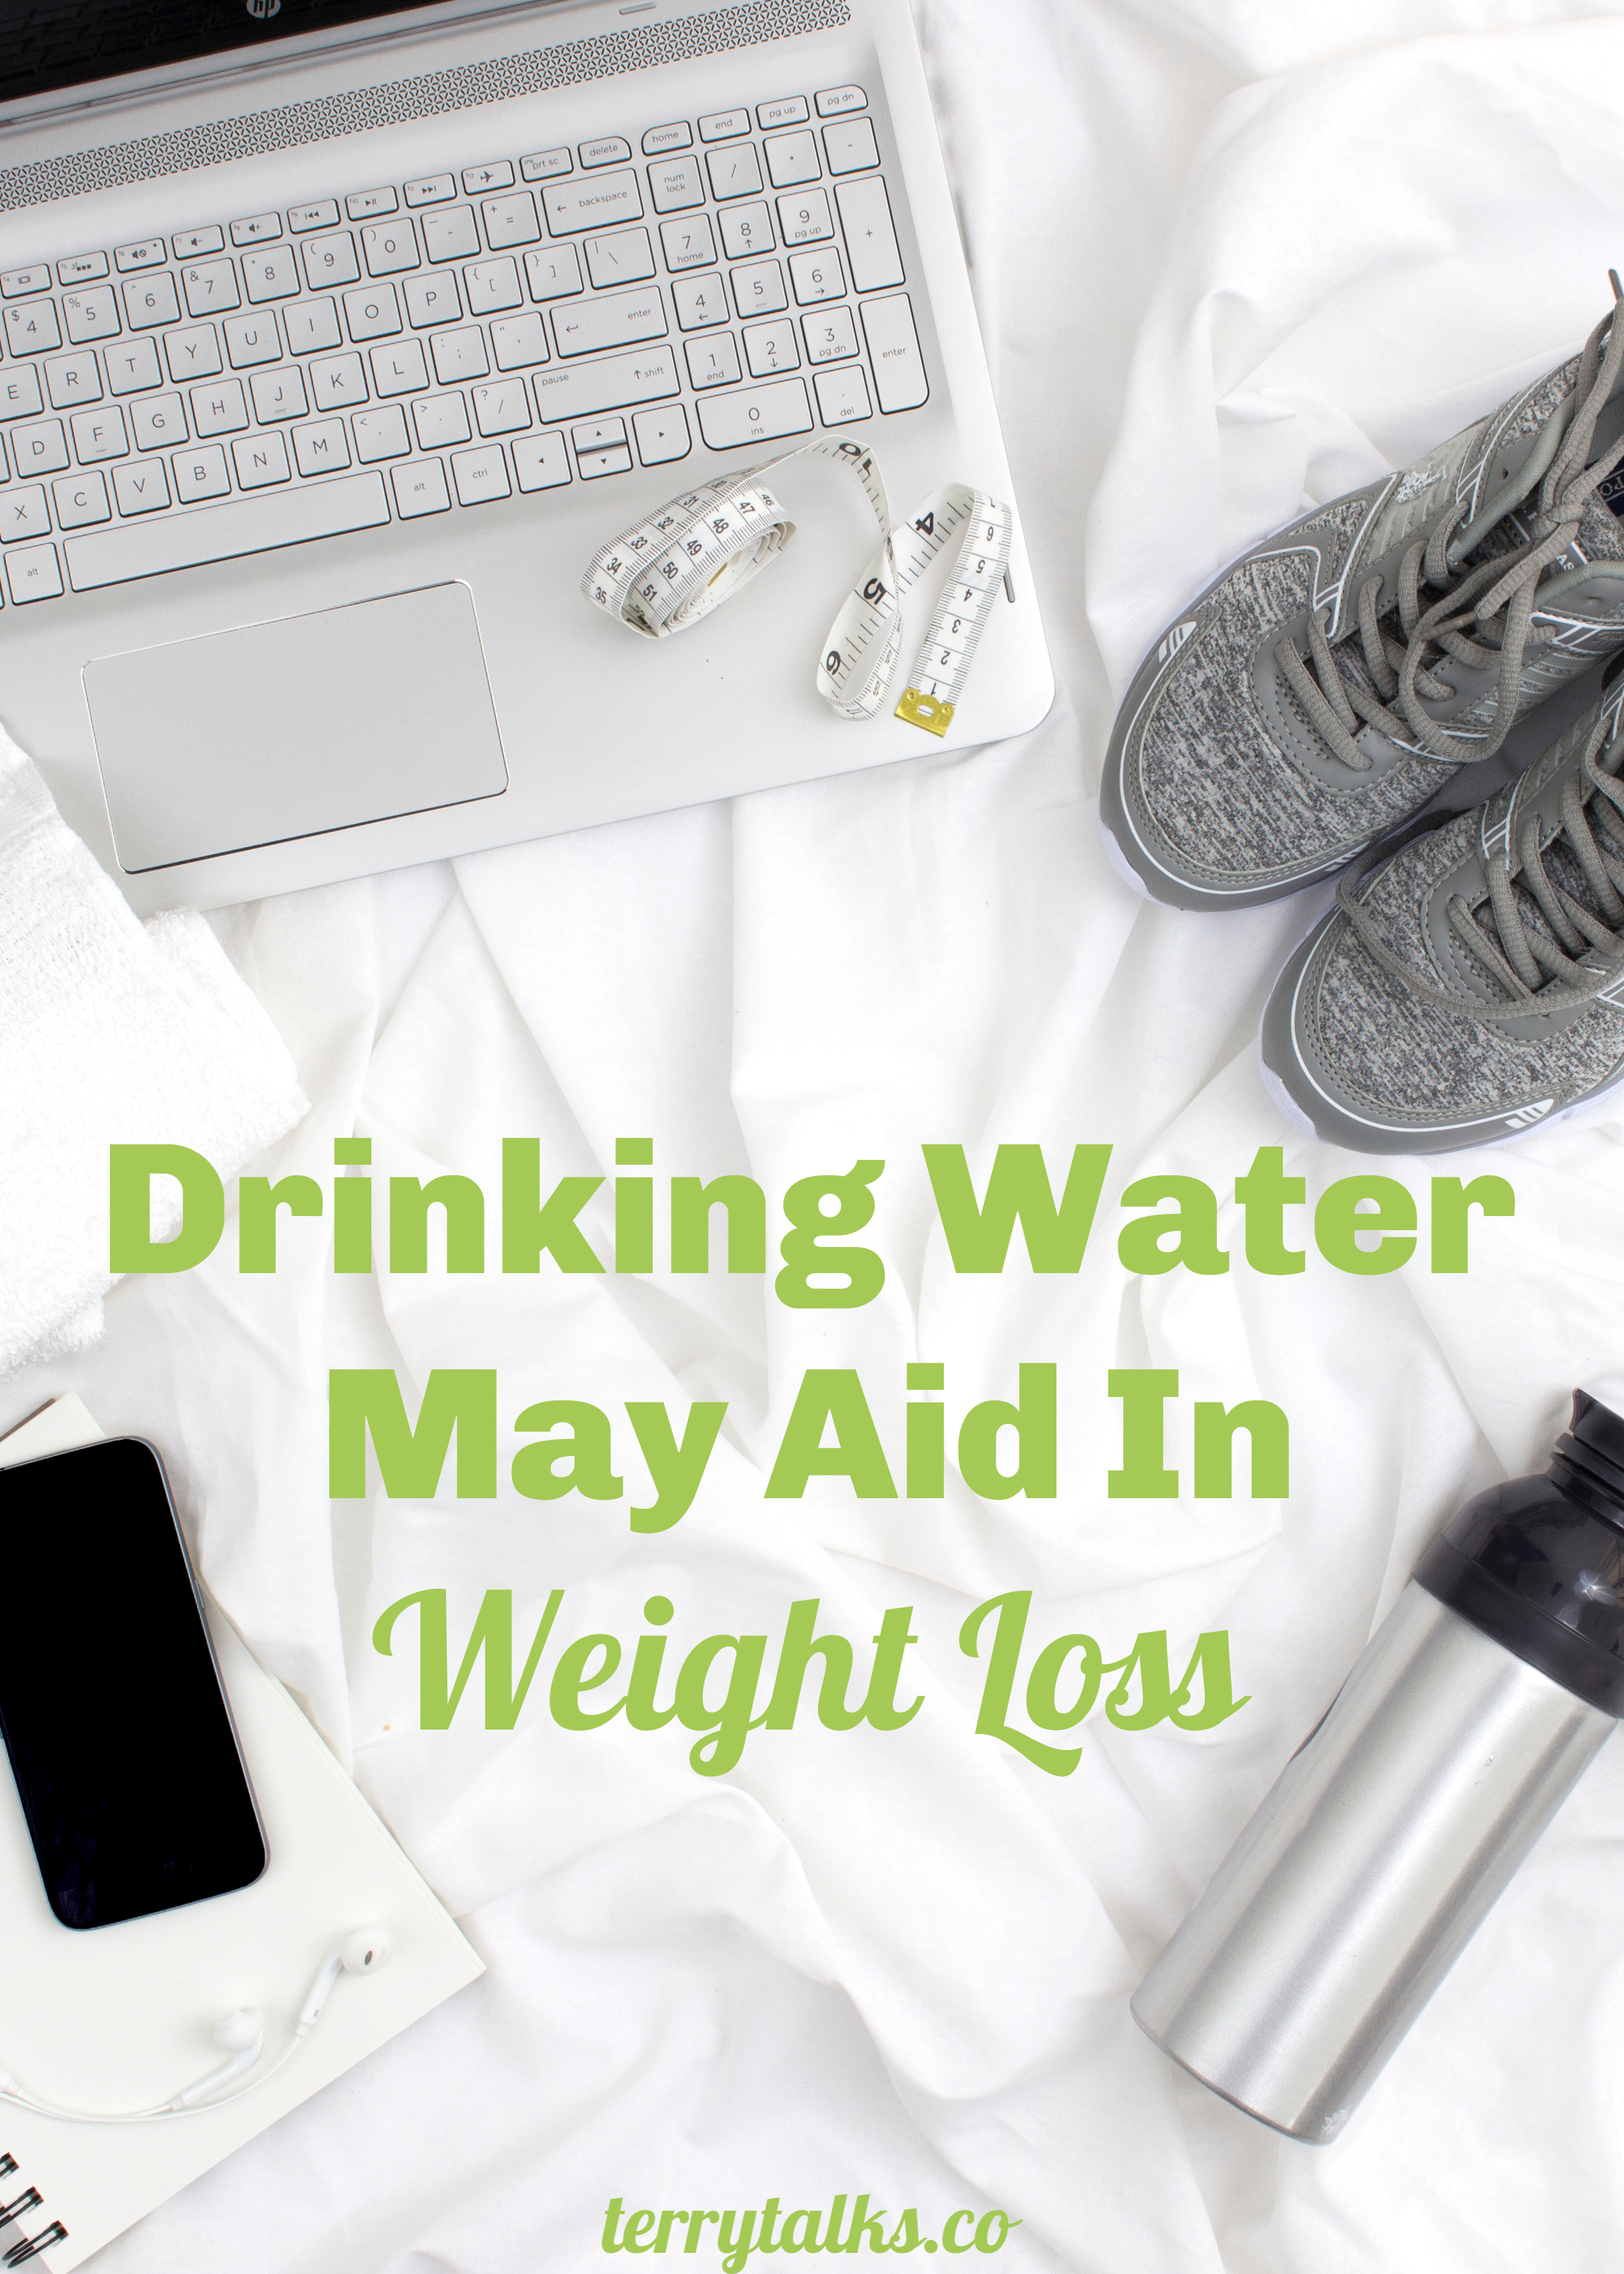 Drinking Water May Aid In Weight Loss